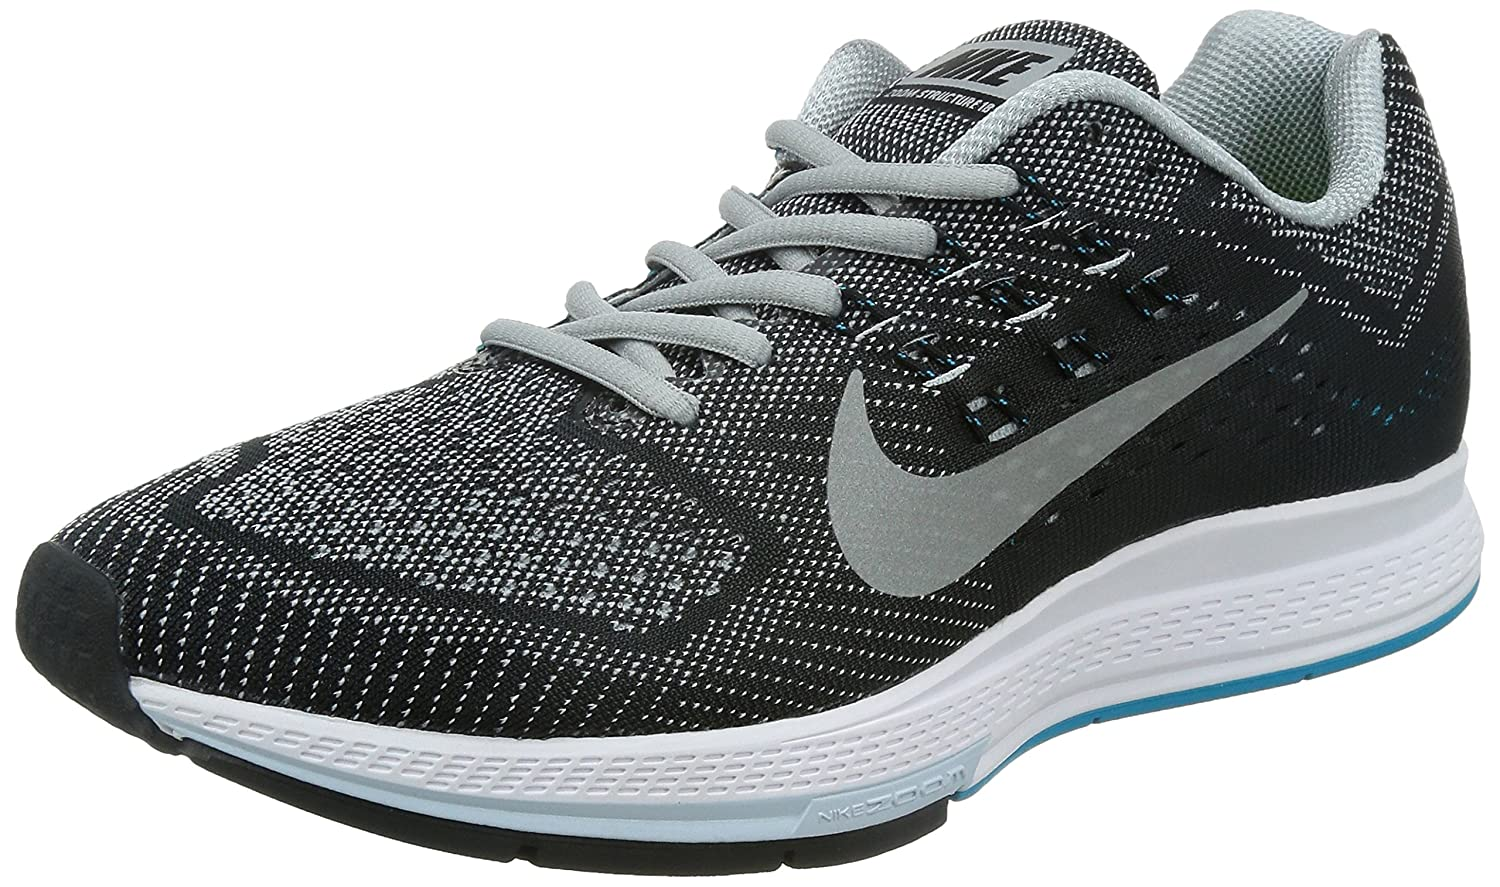 5a9a4982c12f 60%OFF Nike Air Zoom Structure 18 Men s Running Shoes 683731-002 Size 10